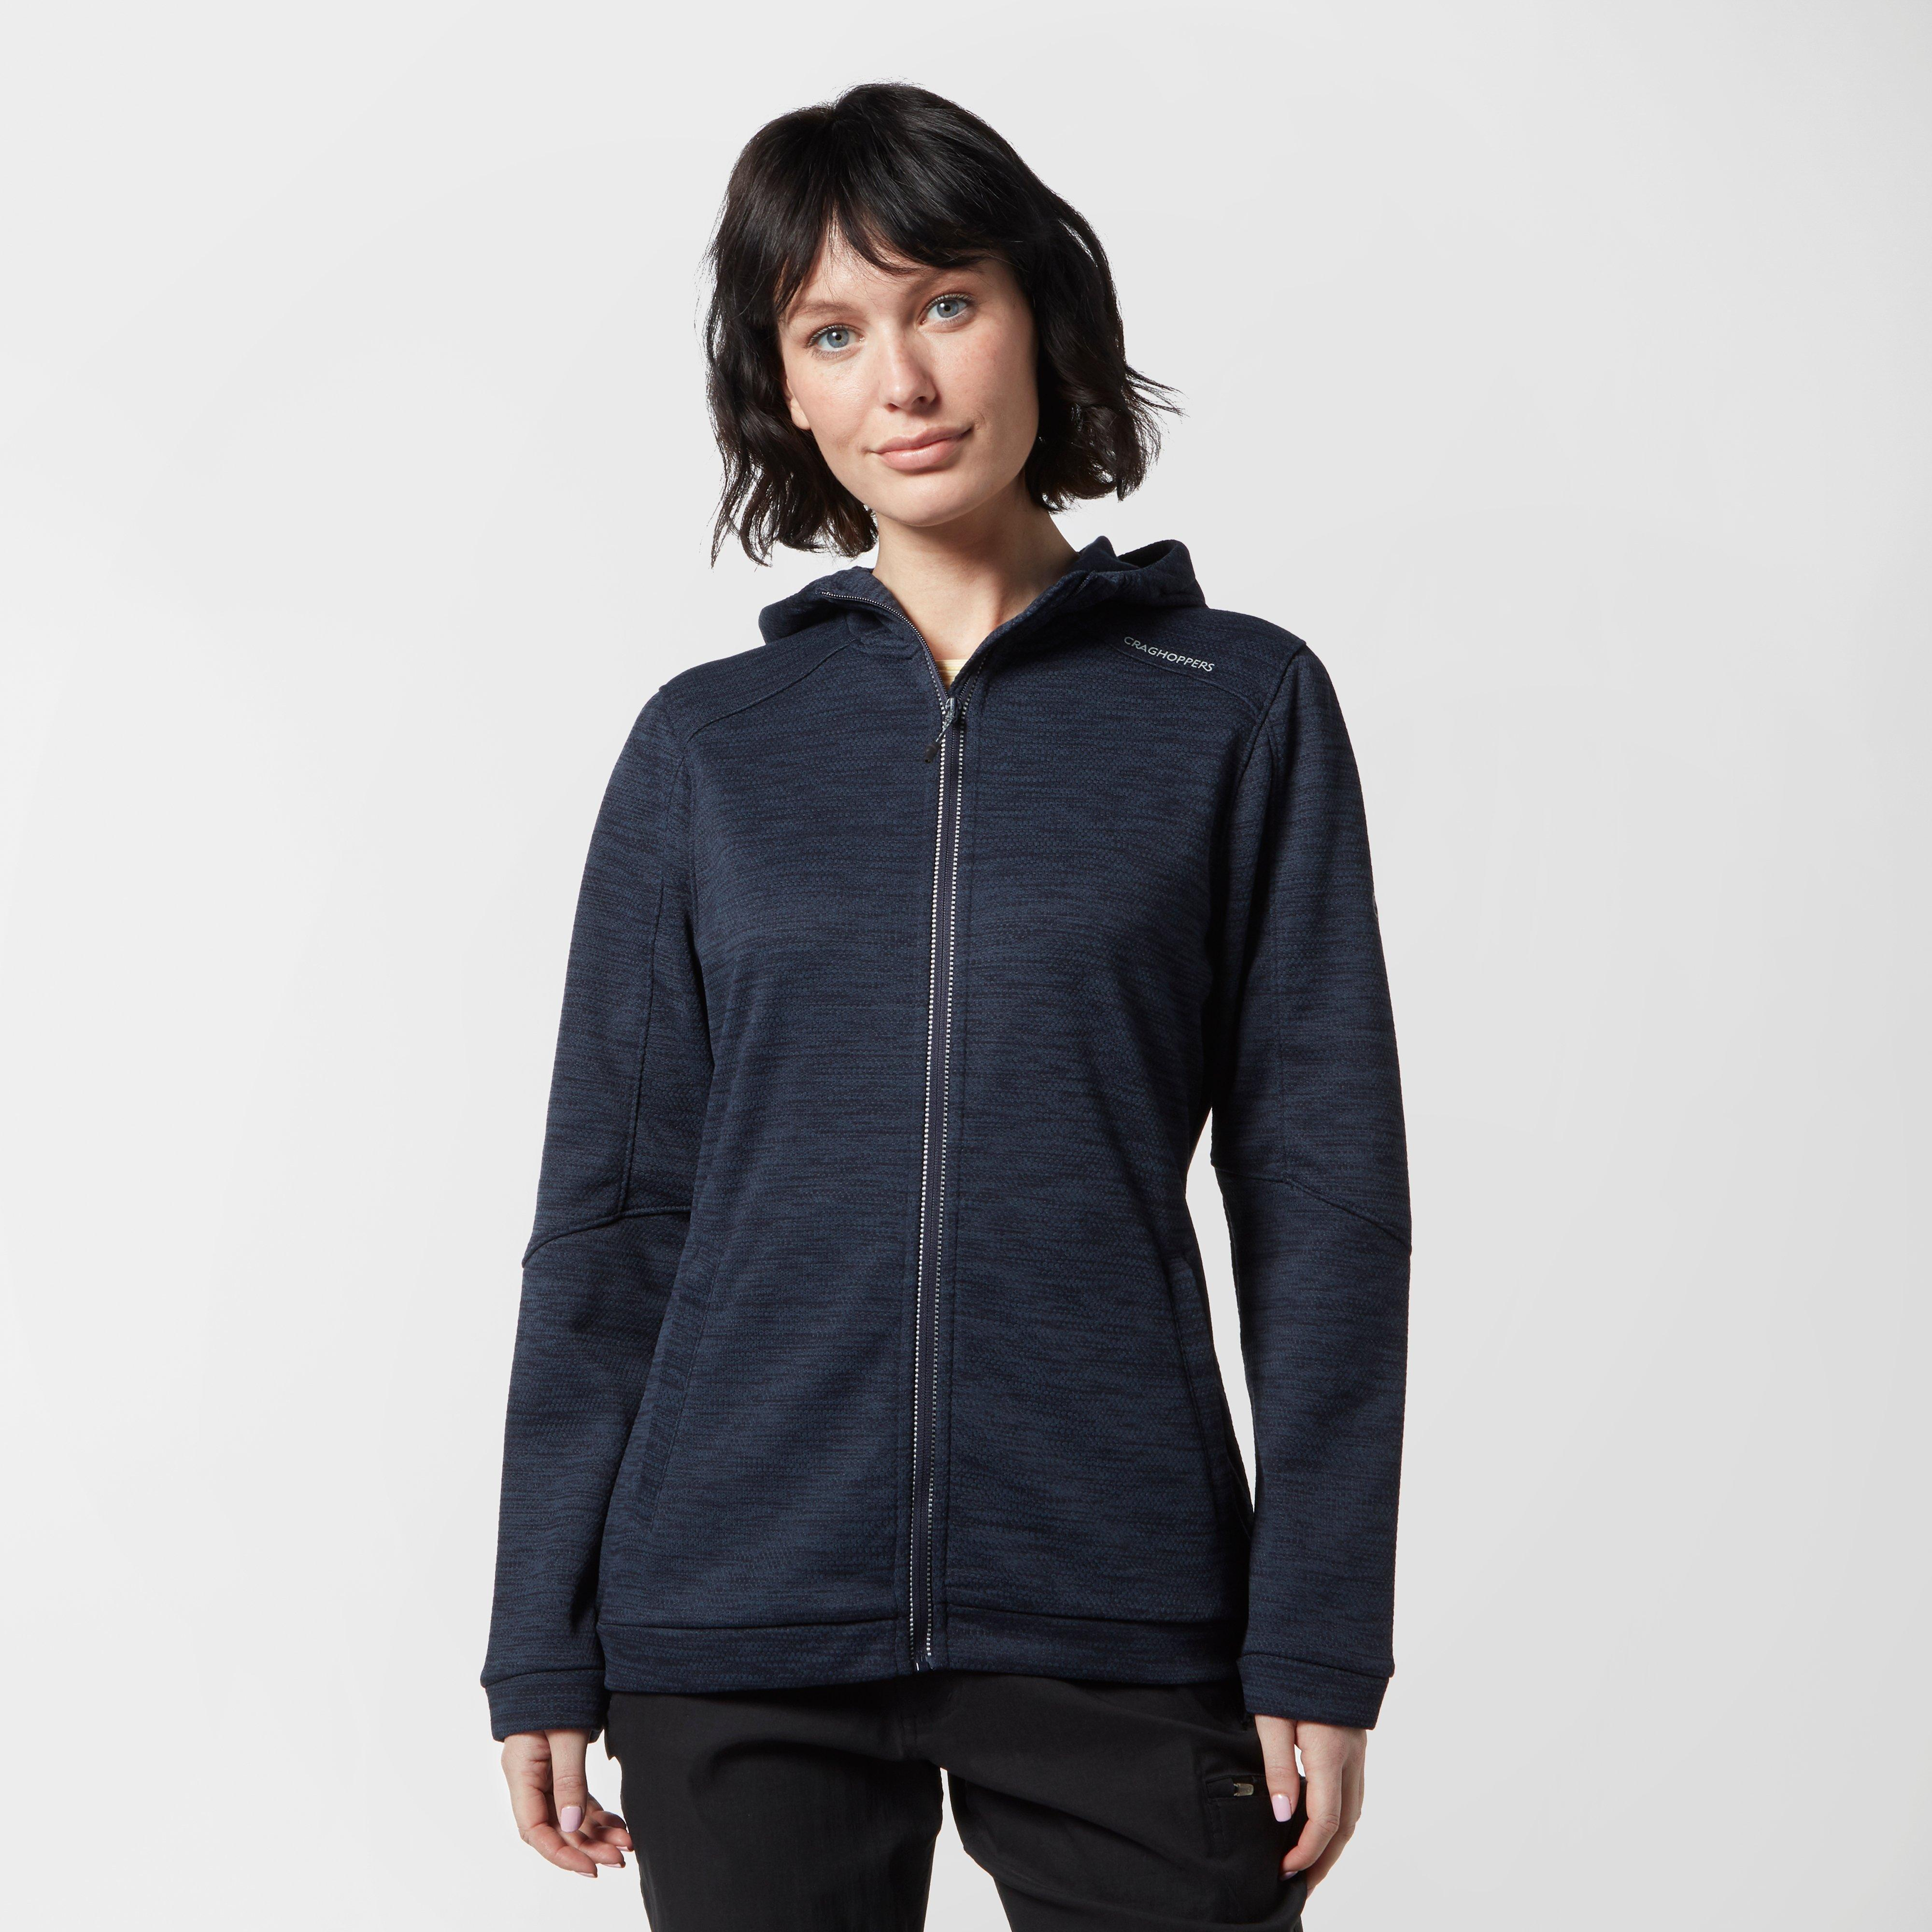 Craghoppers Craghoppers womens Strata Hooded Jacket - Navy, Navy